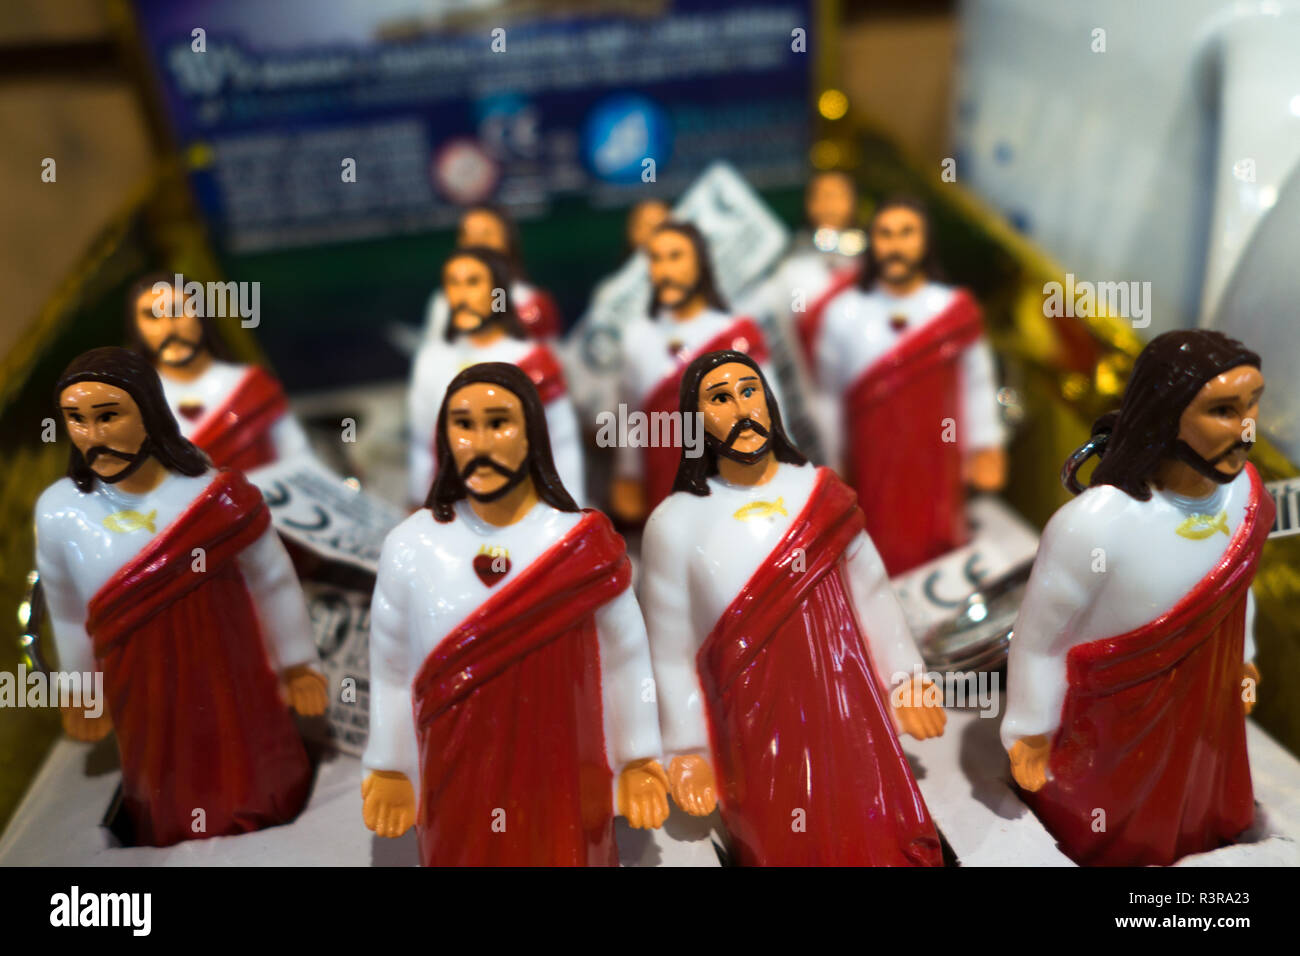 A collection of 'Buddy Christ' figurines for sale in a store.  Buddy Christ is a parody religious icon in the film Dogma. - Stock Image